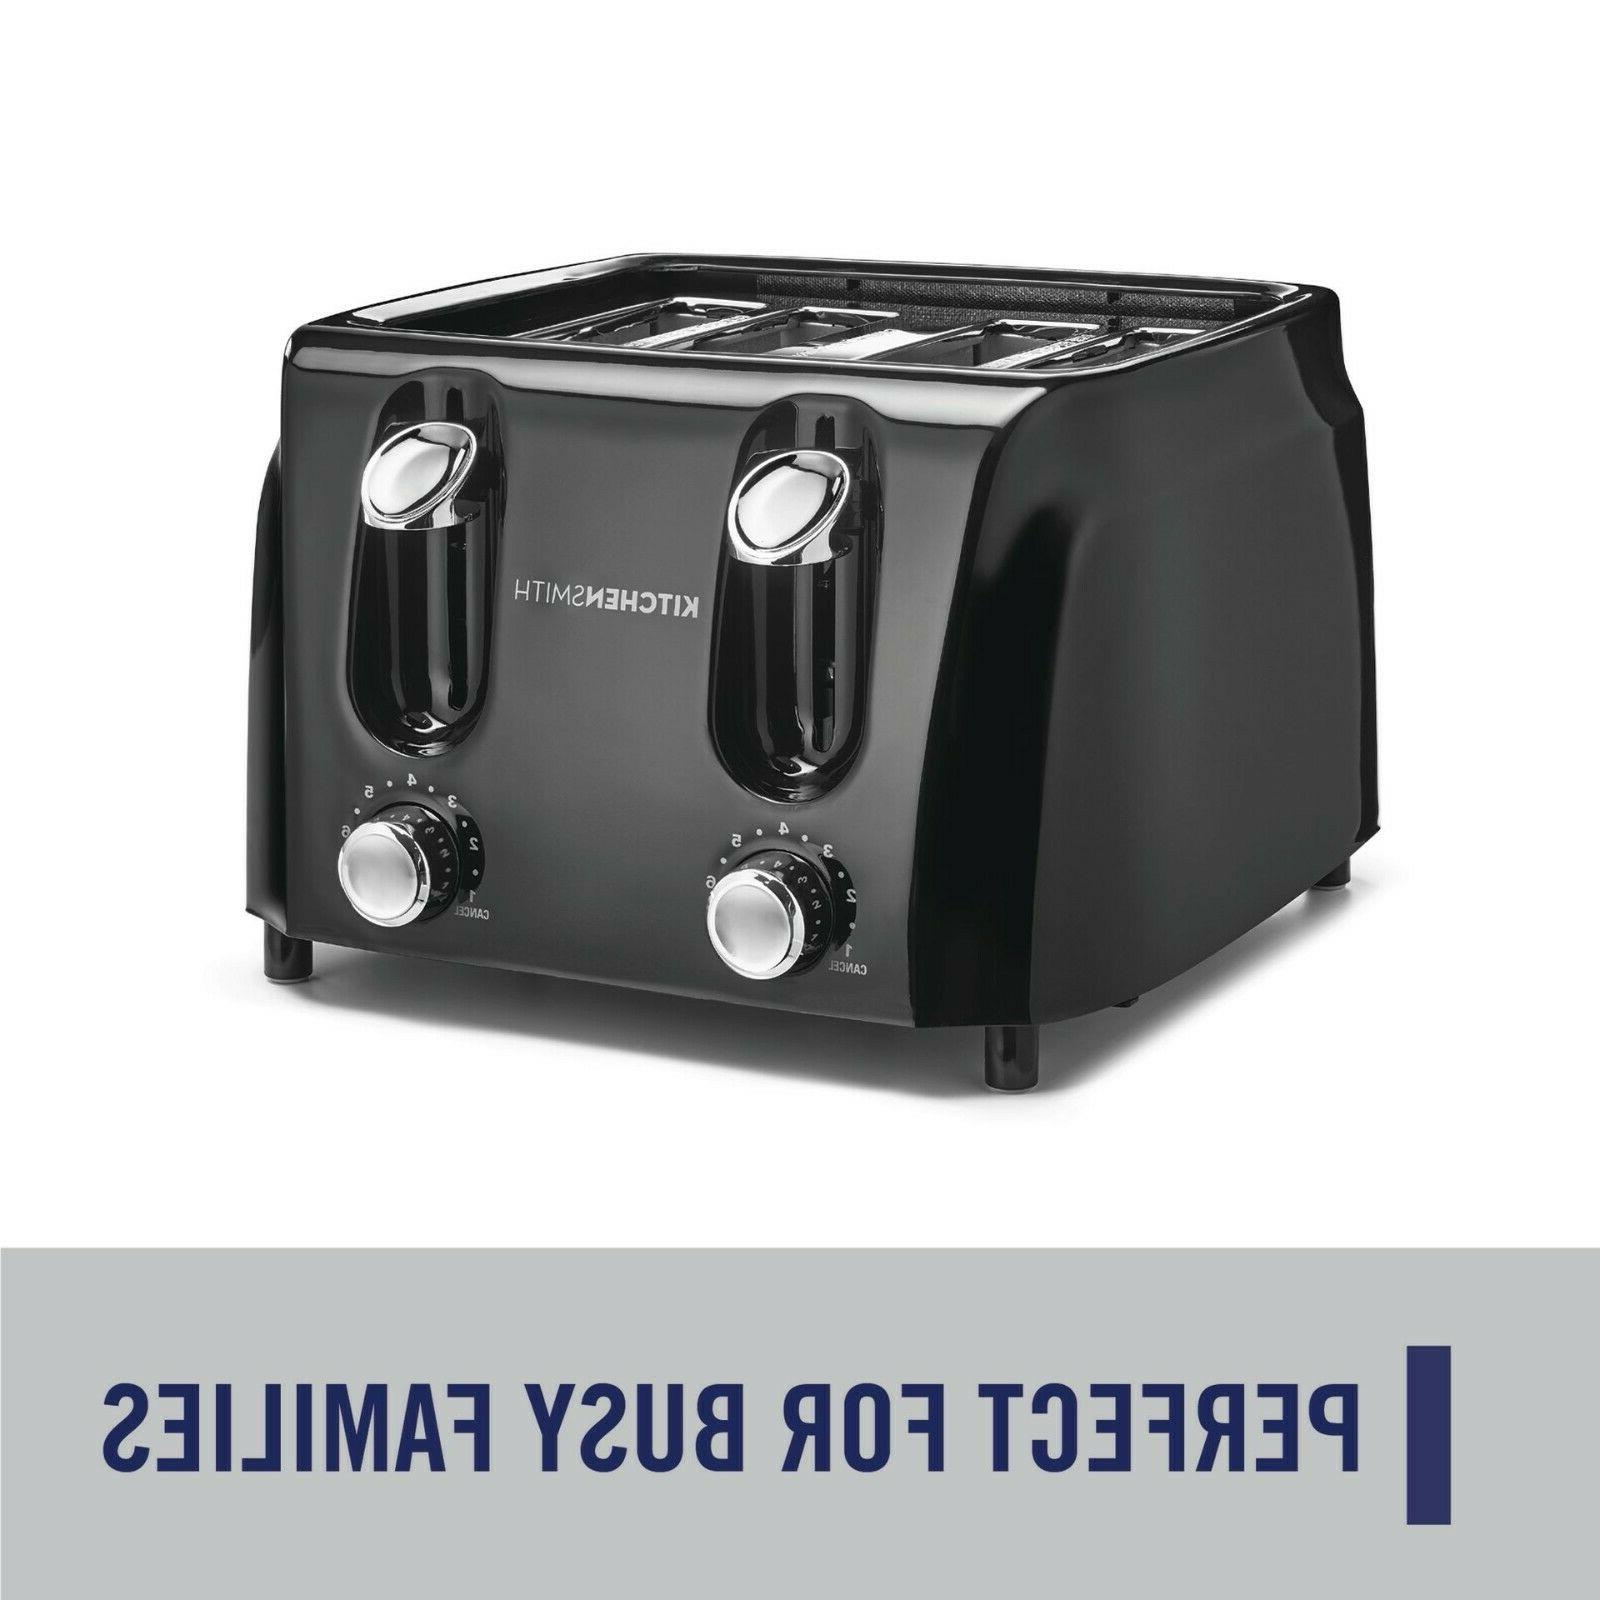 KitchenSmith 6 Browning Settings Extra Wide Slots, Black - New